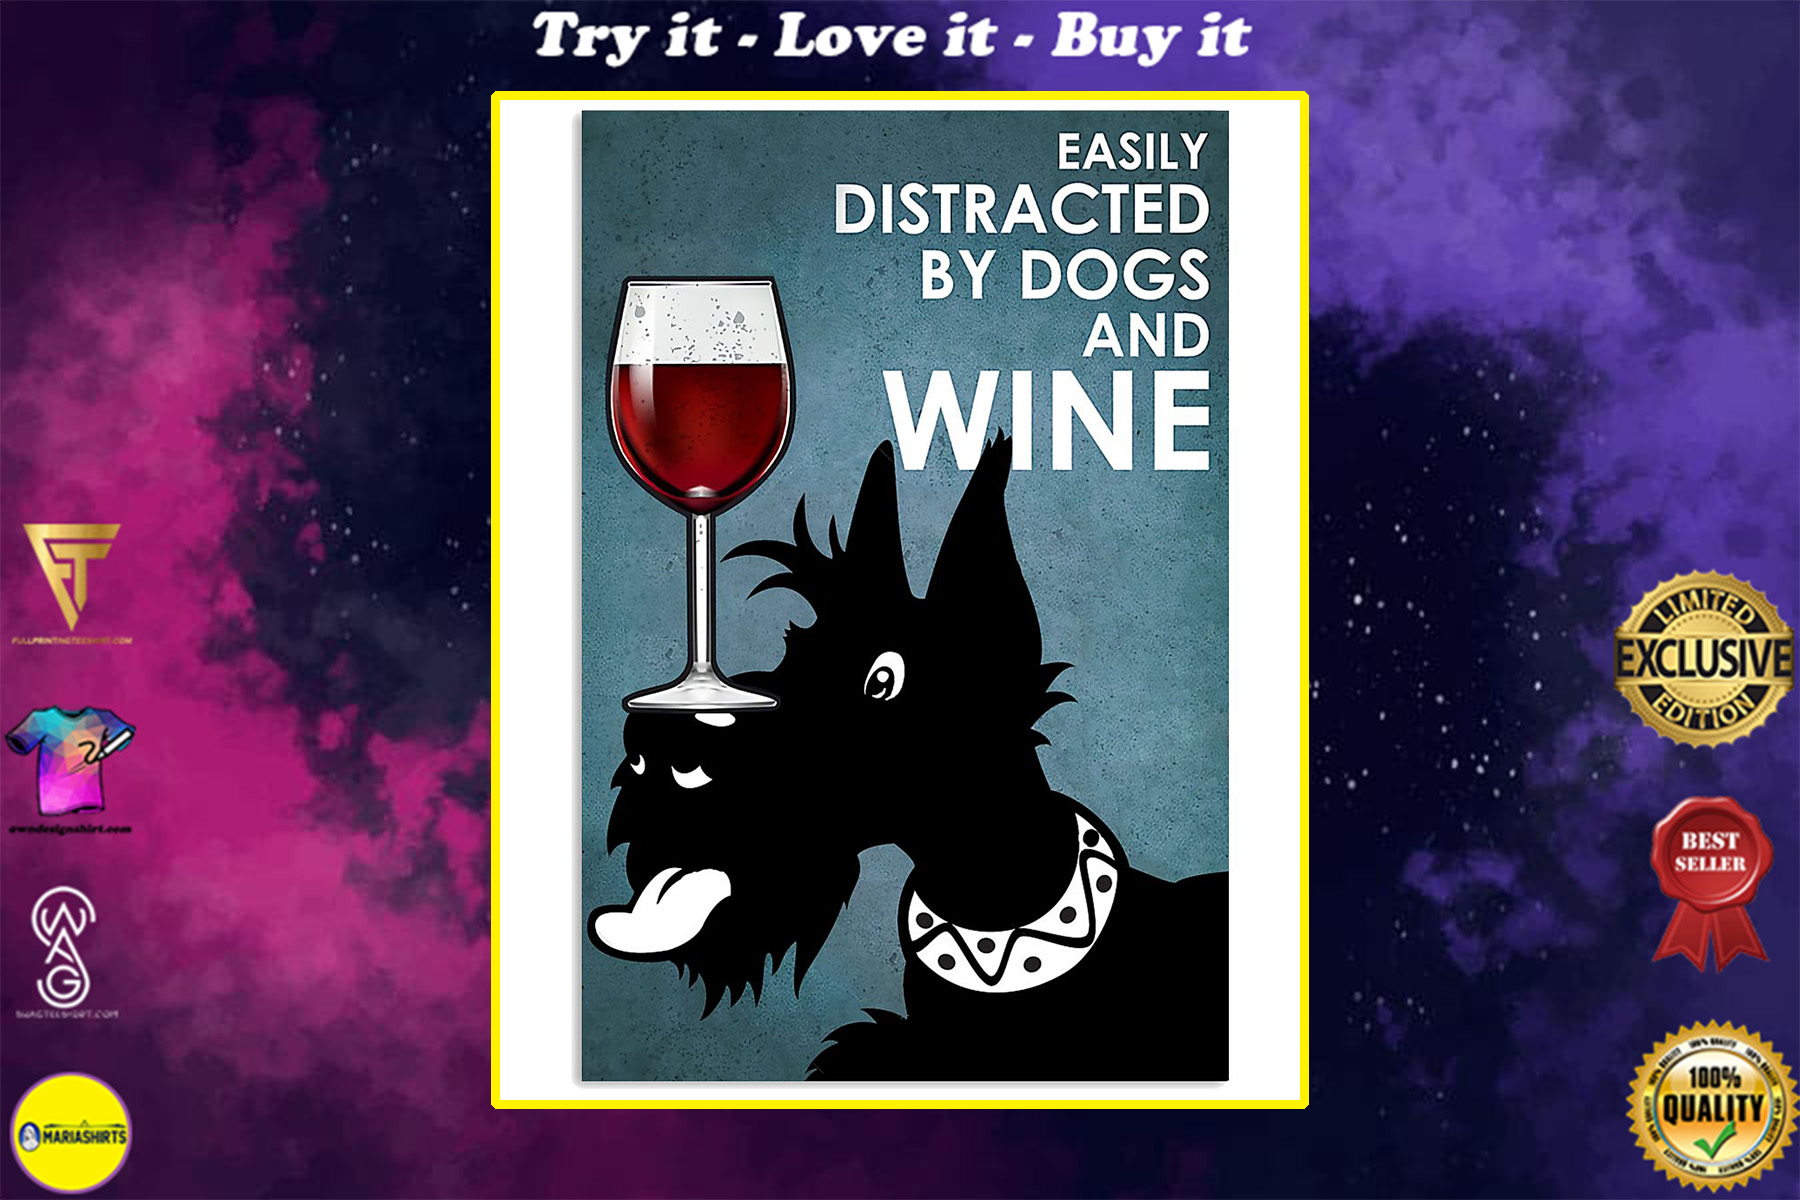 small black terrier easily distracted by dogs and wine poster